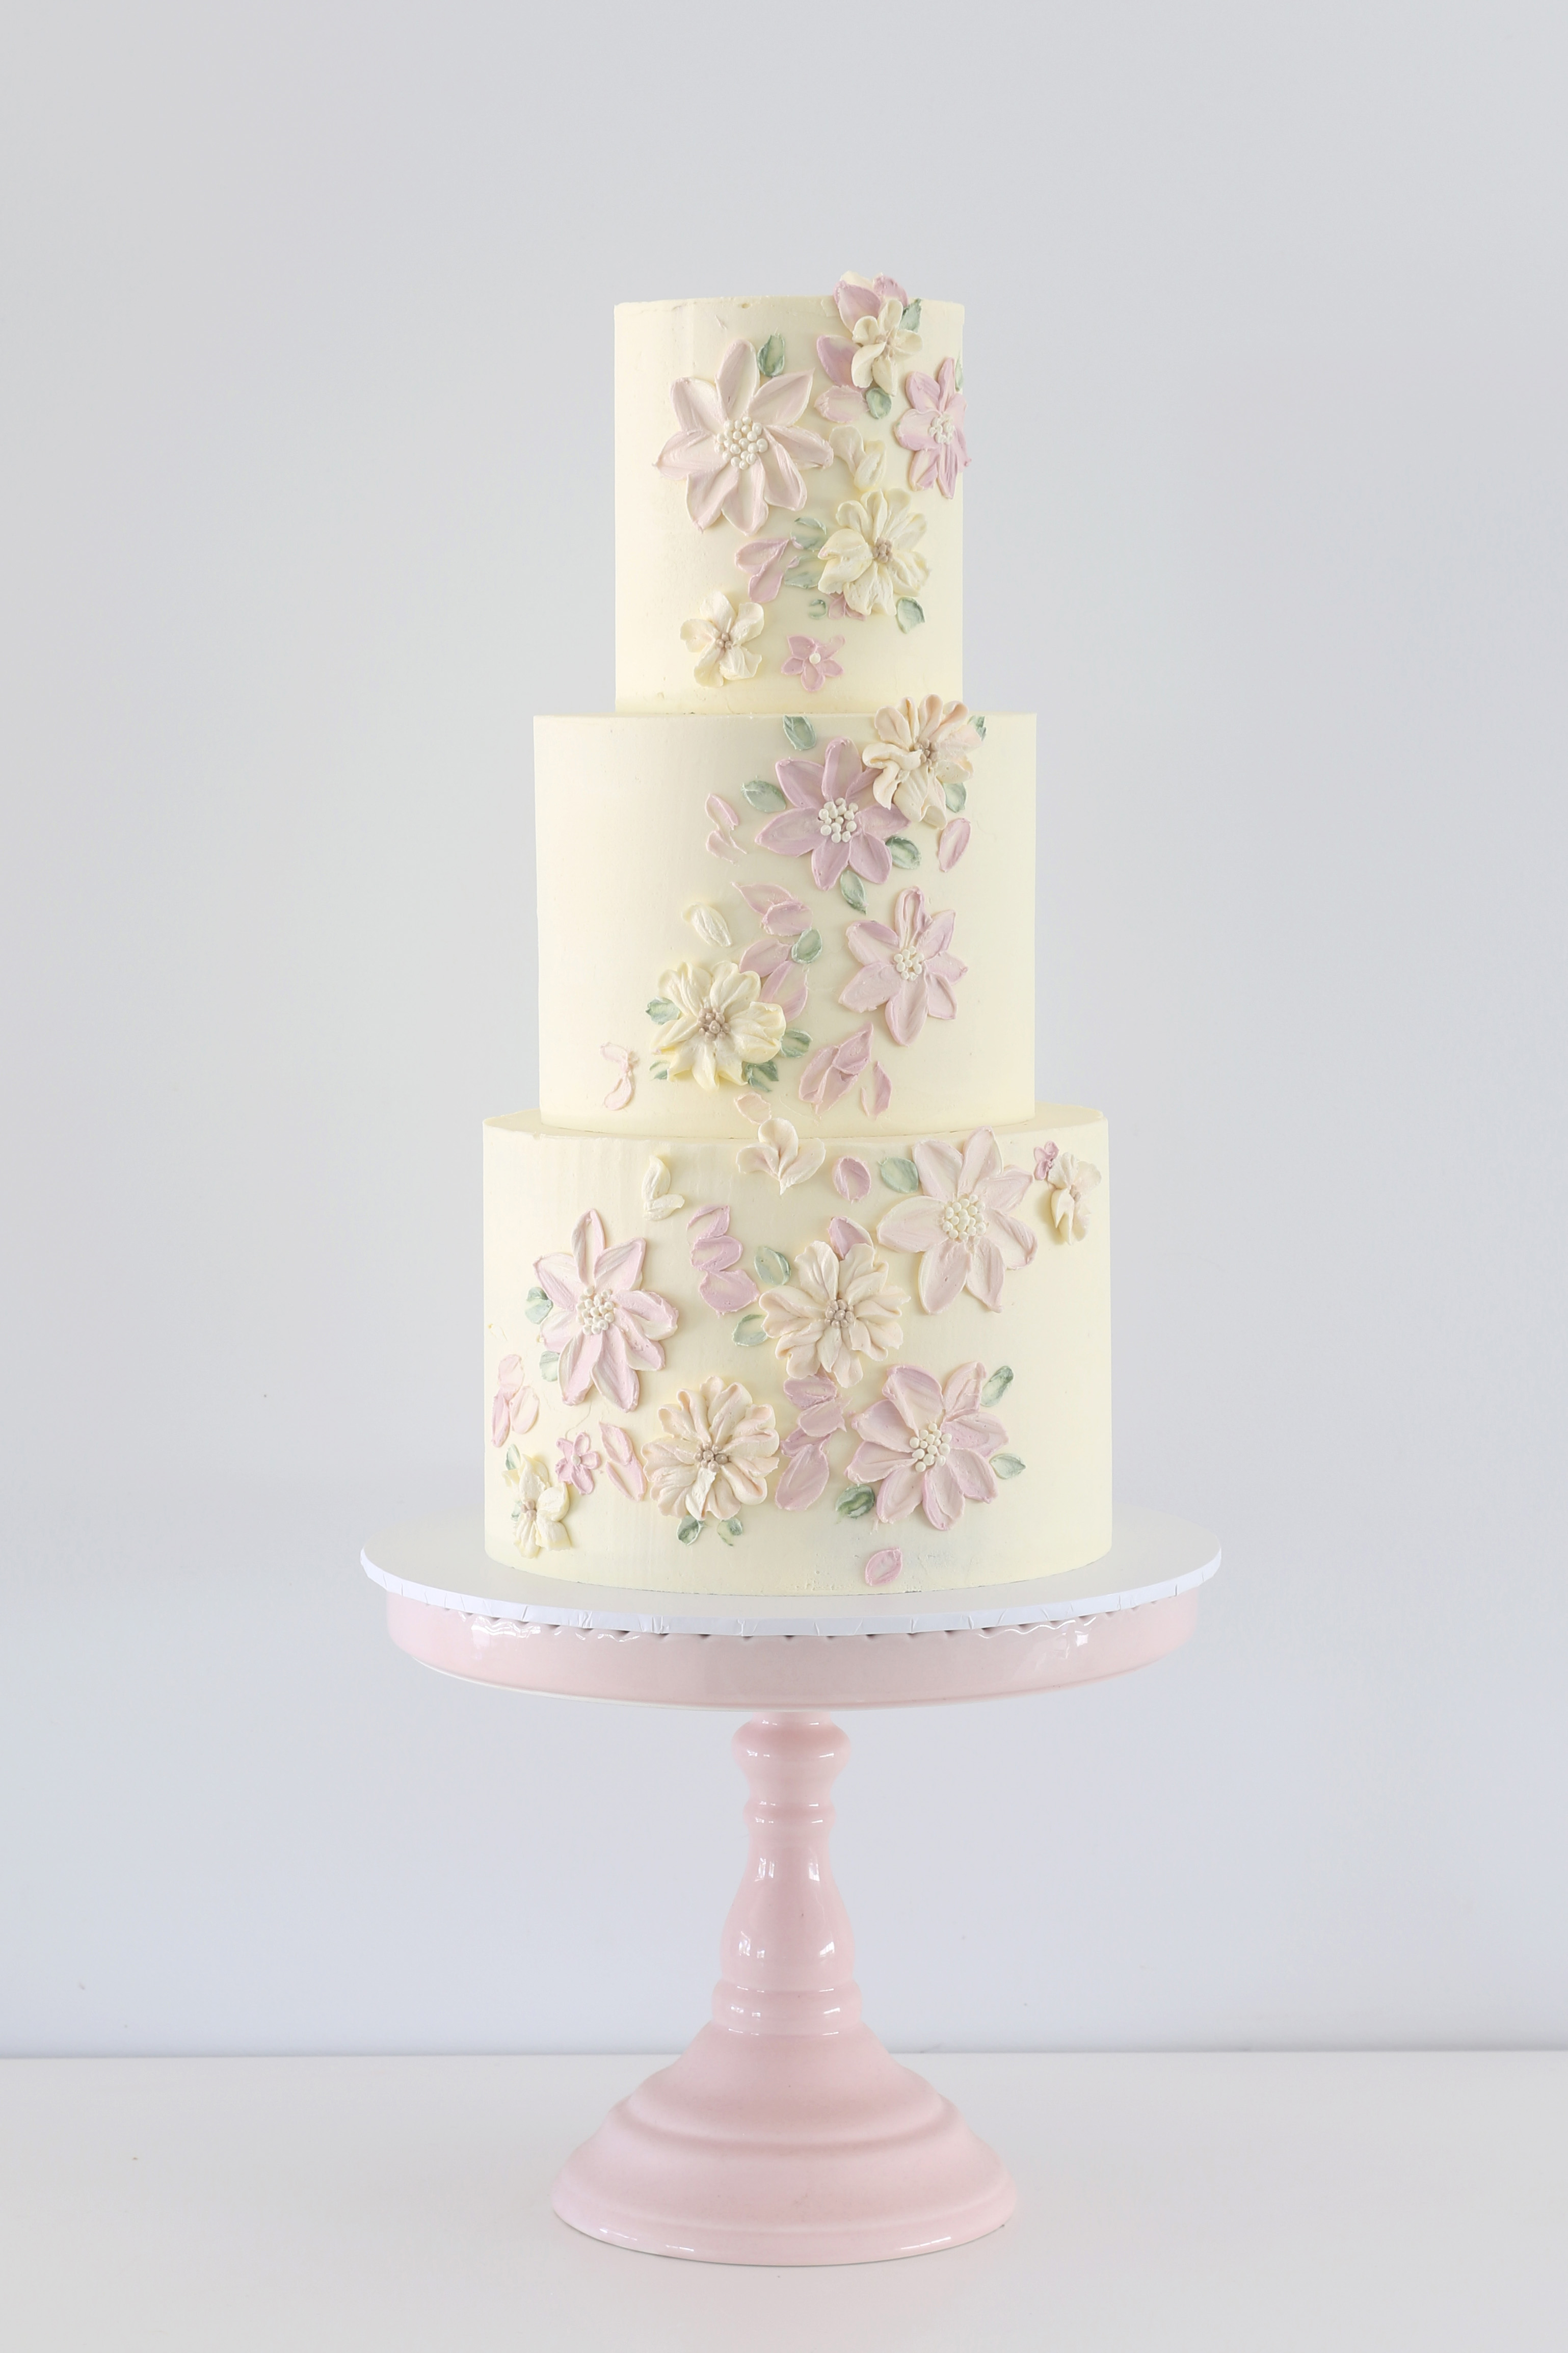 For Those Looking An Alternative Wedding Cake Zoe Clark Cakes Also Offers A Stunning Patisserie Style Range This Includes Delicious Buttercream